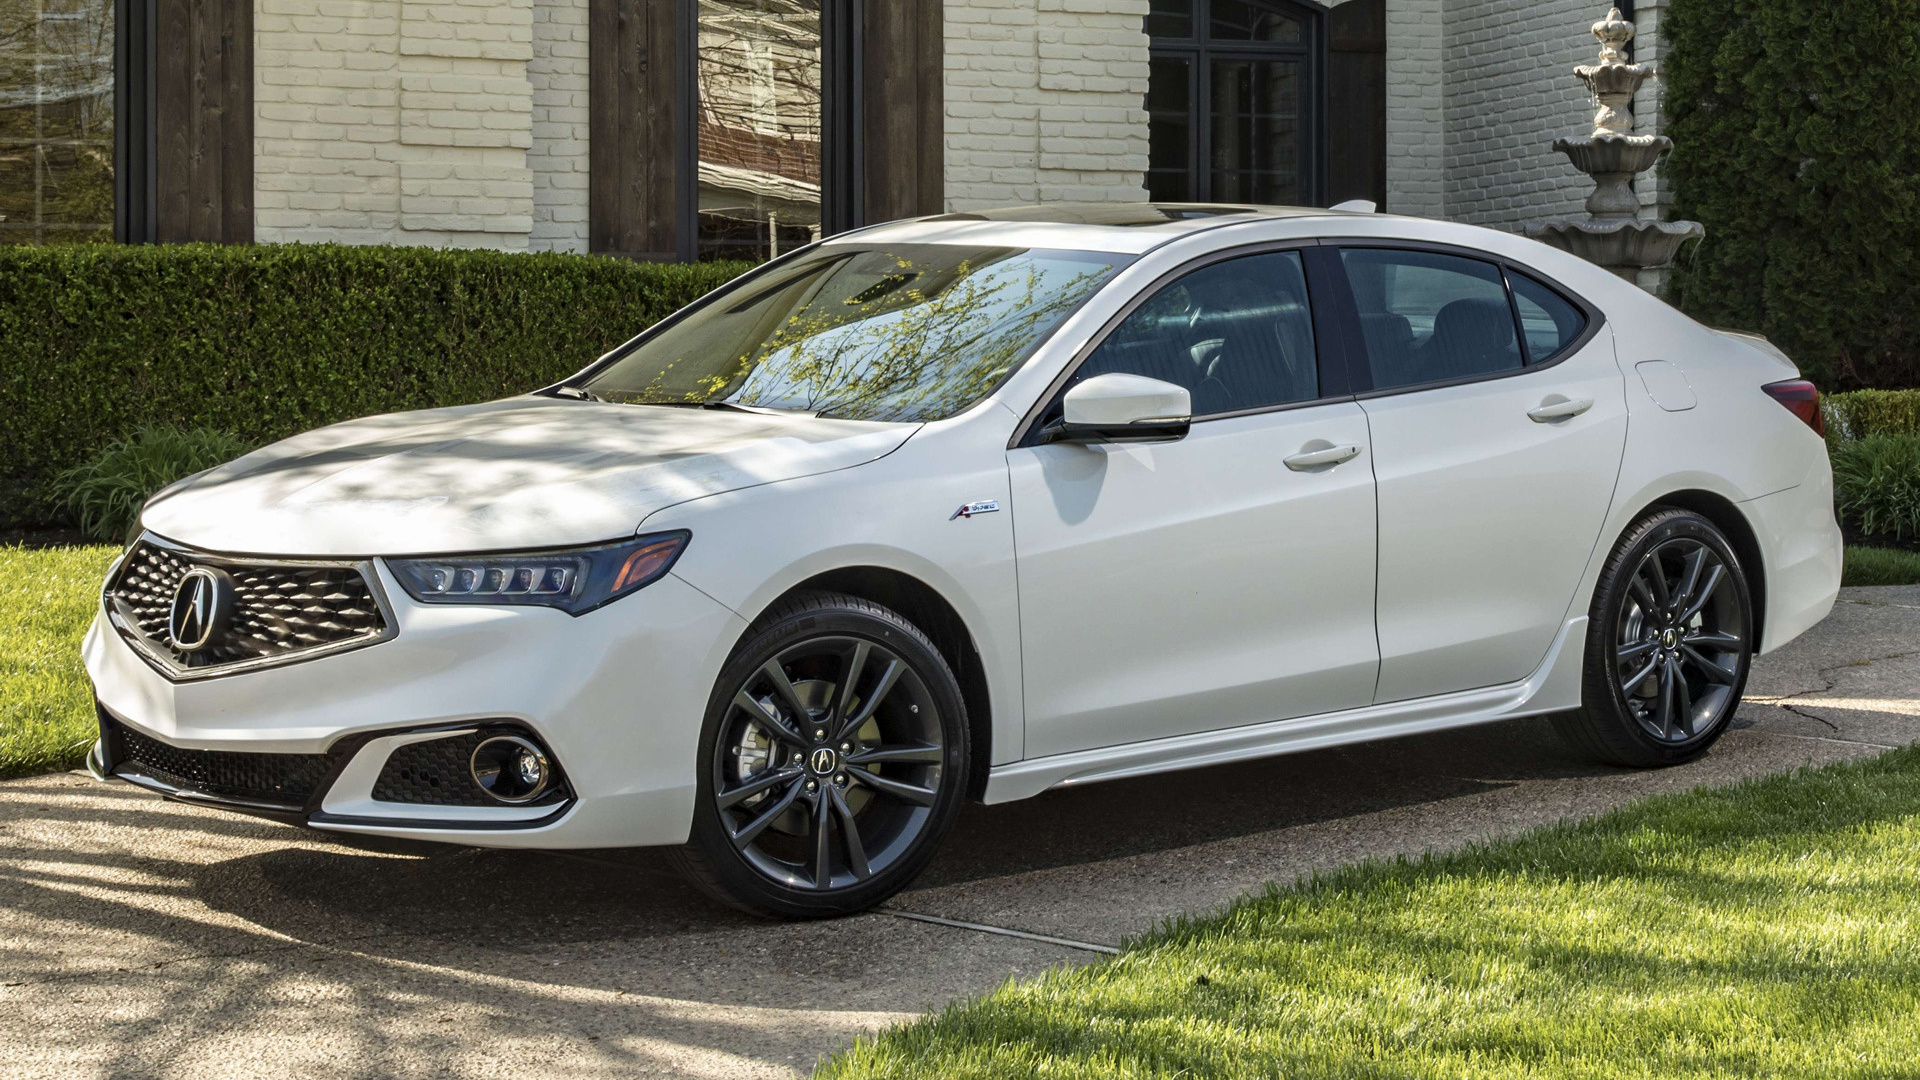 acura tlx a spec 2018 wallpapers and hd images car pixel. Black Bedroom Furniture Sets. Home Design Ideas